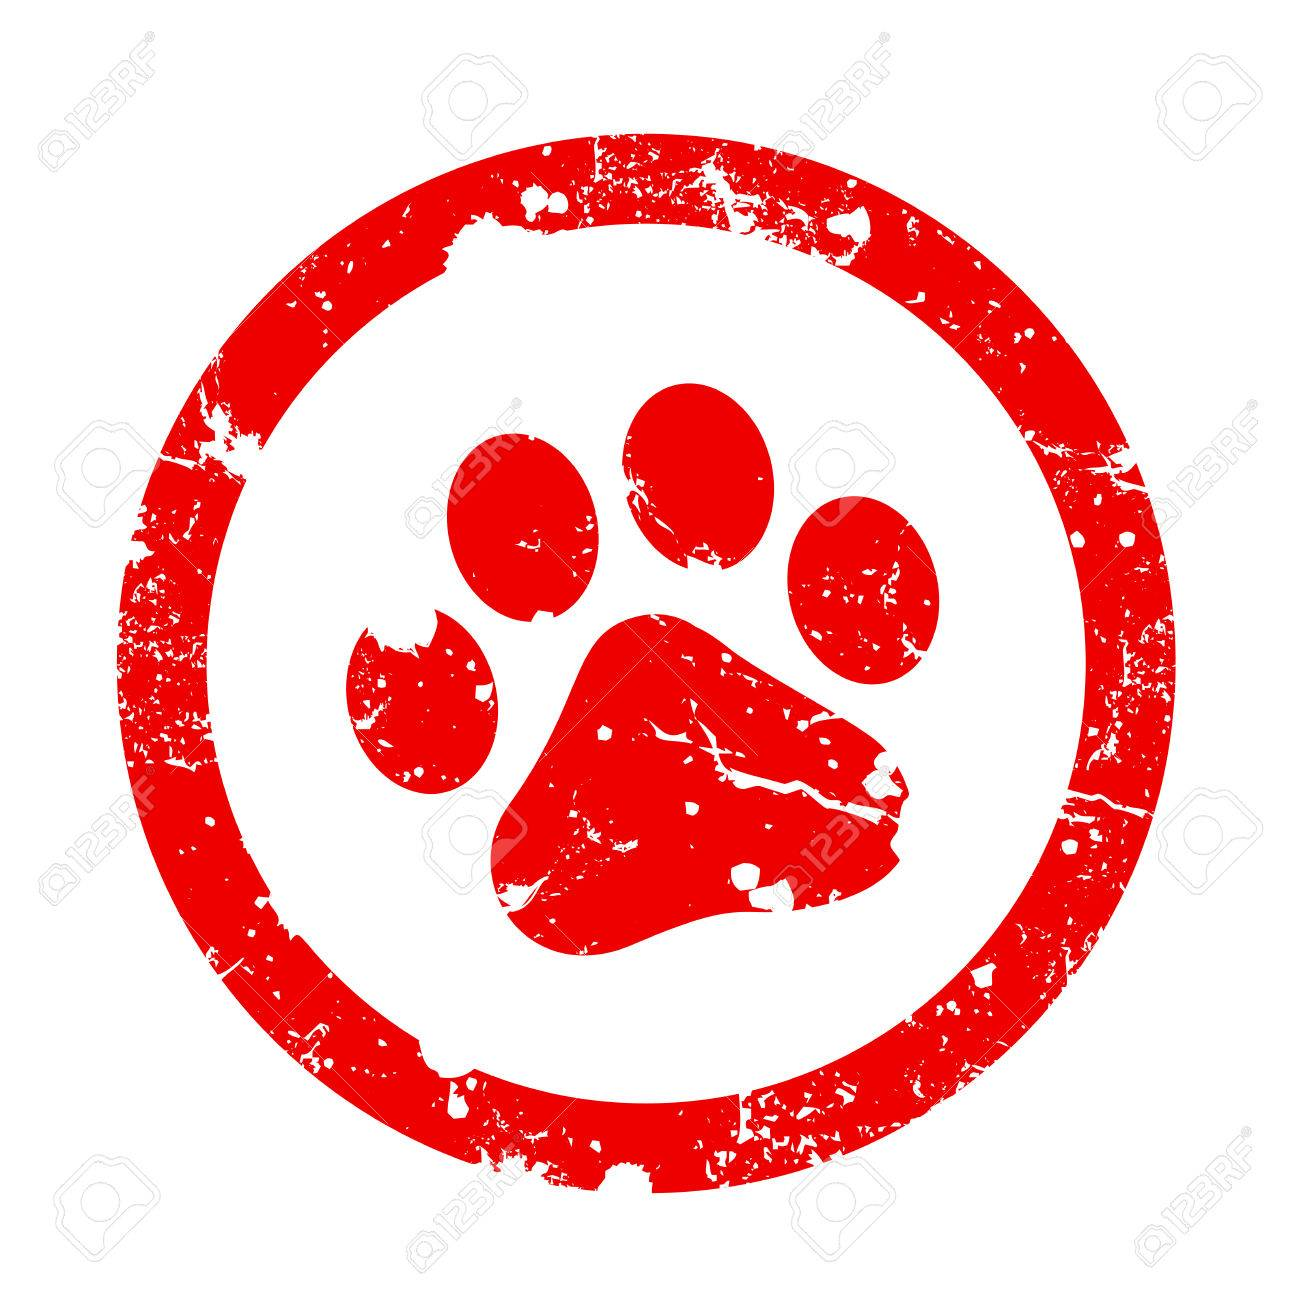 Red paw print inside circle frame grunge clipart isolated on...